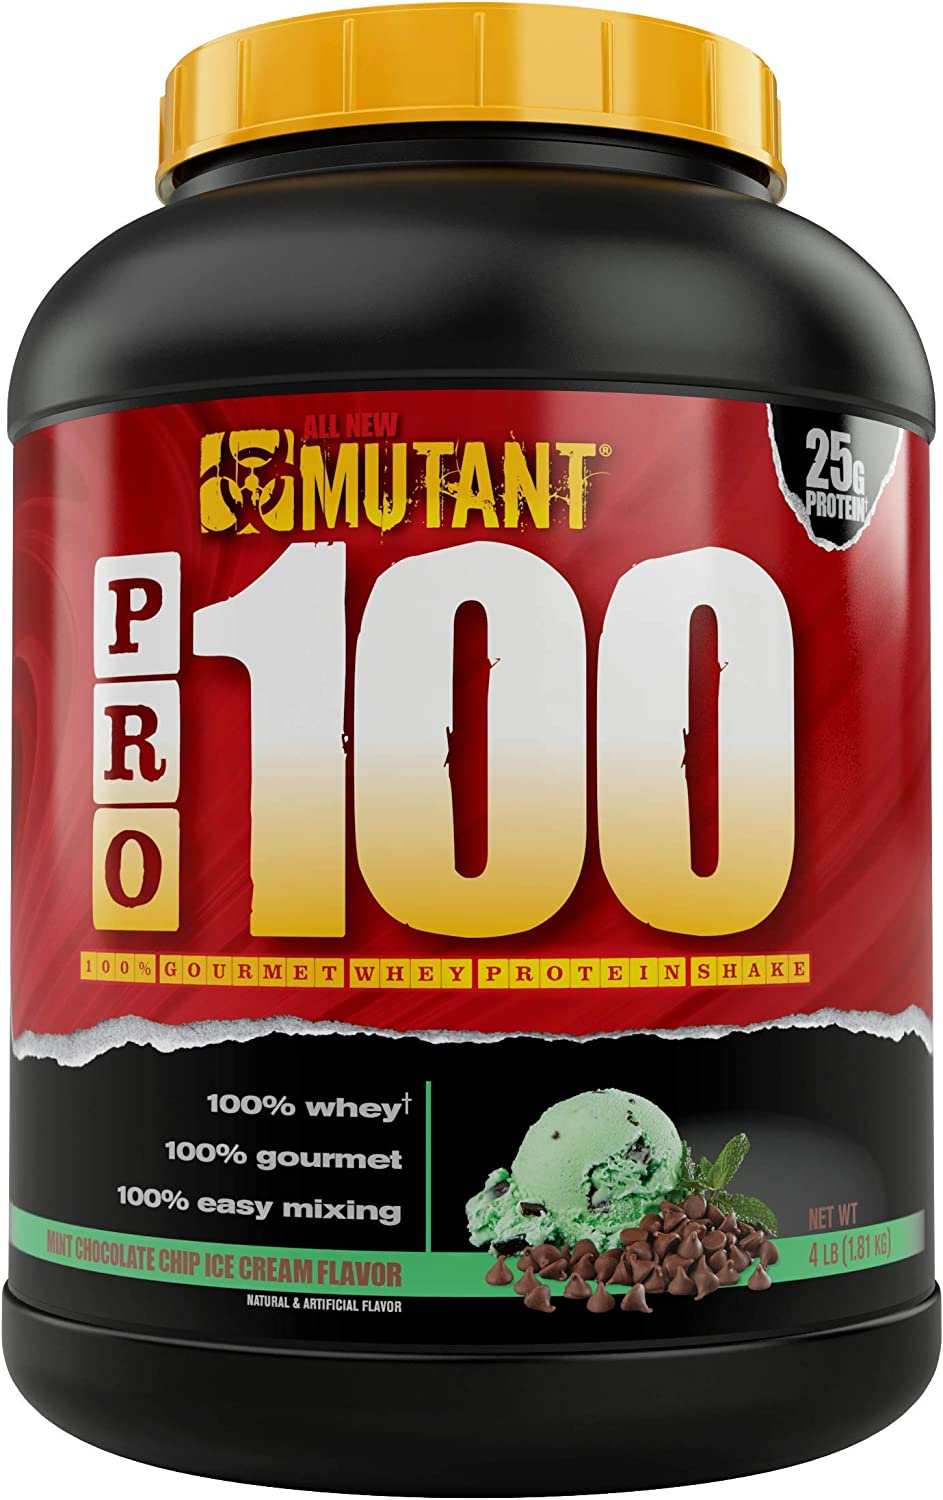 Mutant Pro 100 100 Whey Protein Shake with No Hidden Ingredients Comes in Delicious Gourmet Flavors 4 lbs Mint Chocolate Chip Ice Cream